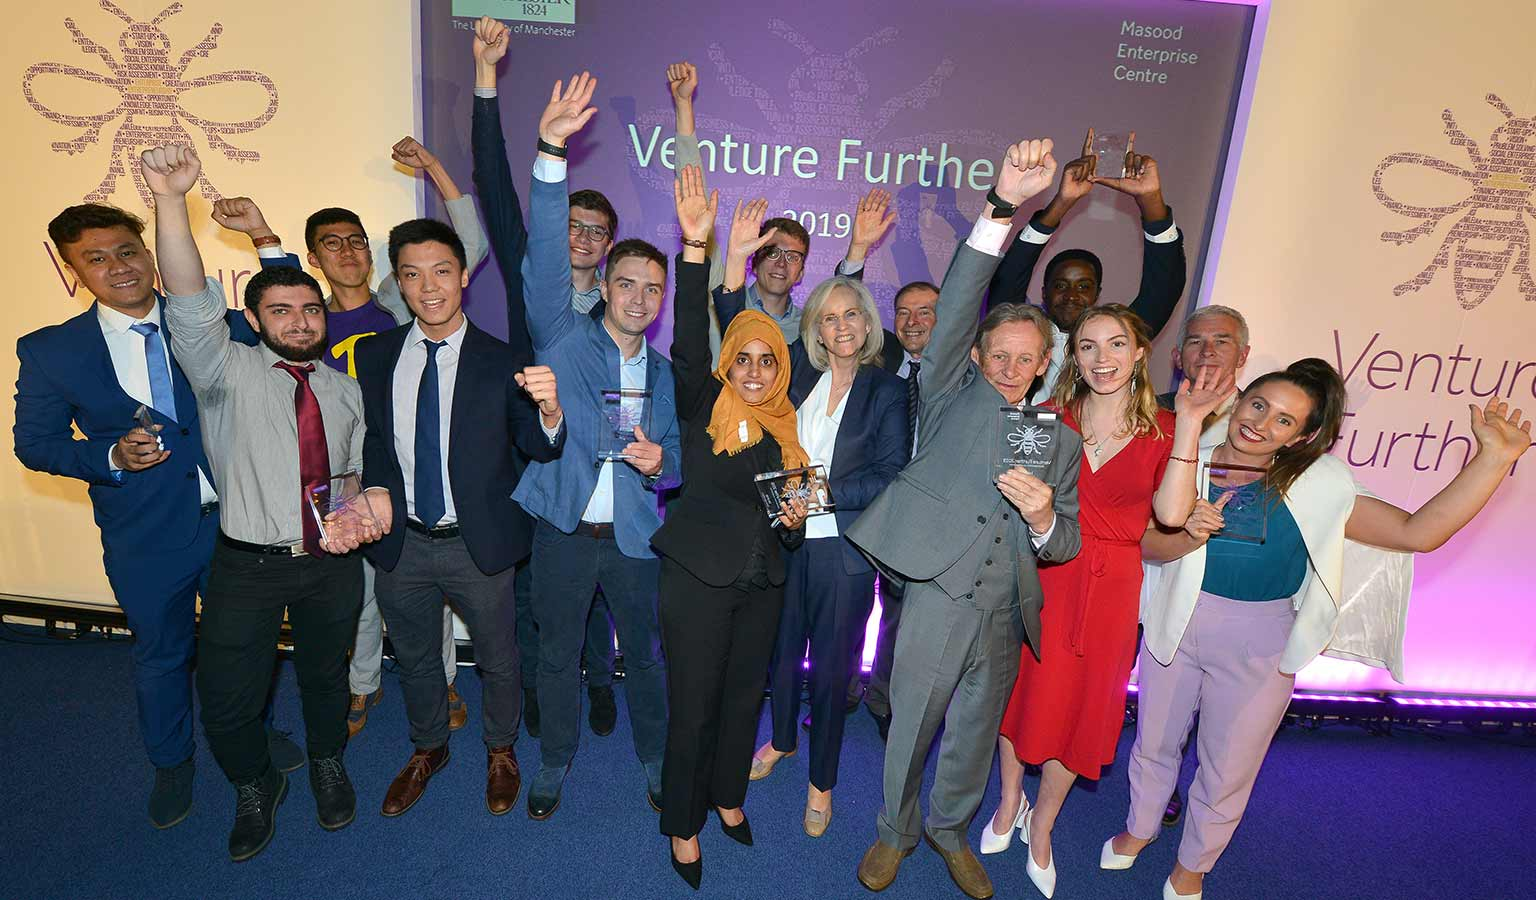 Venture Further 2019 winners